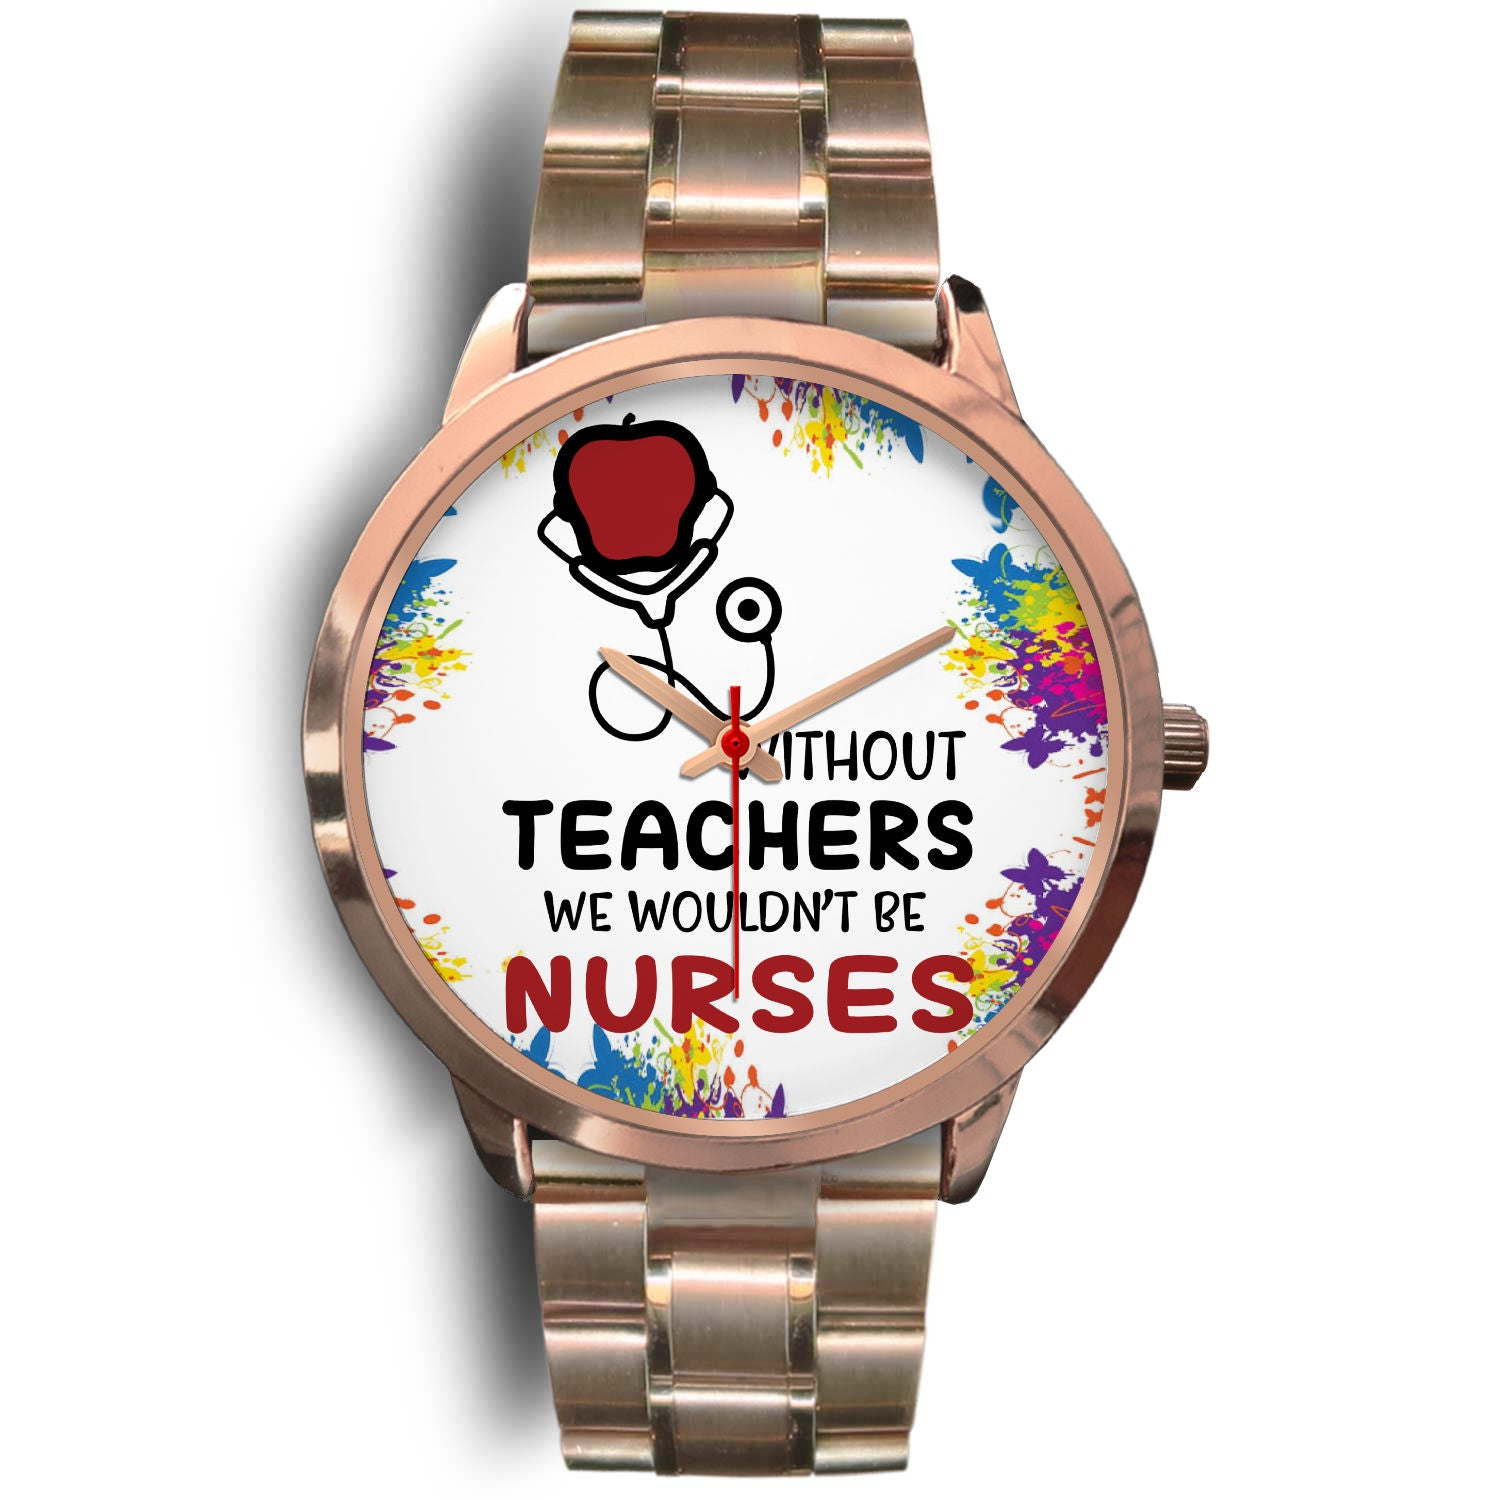 VIRA rose gold stainless steel watch for awesome teachers & nurses